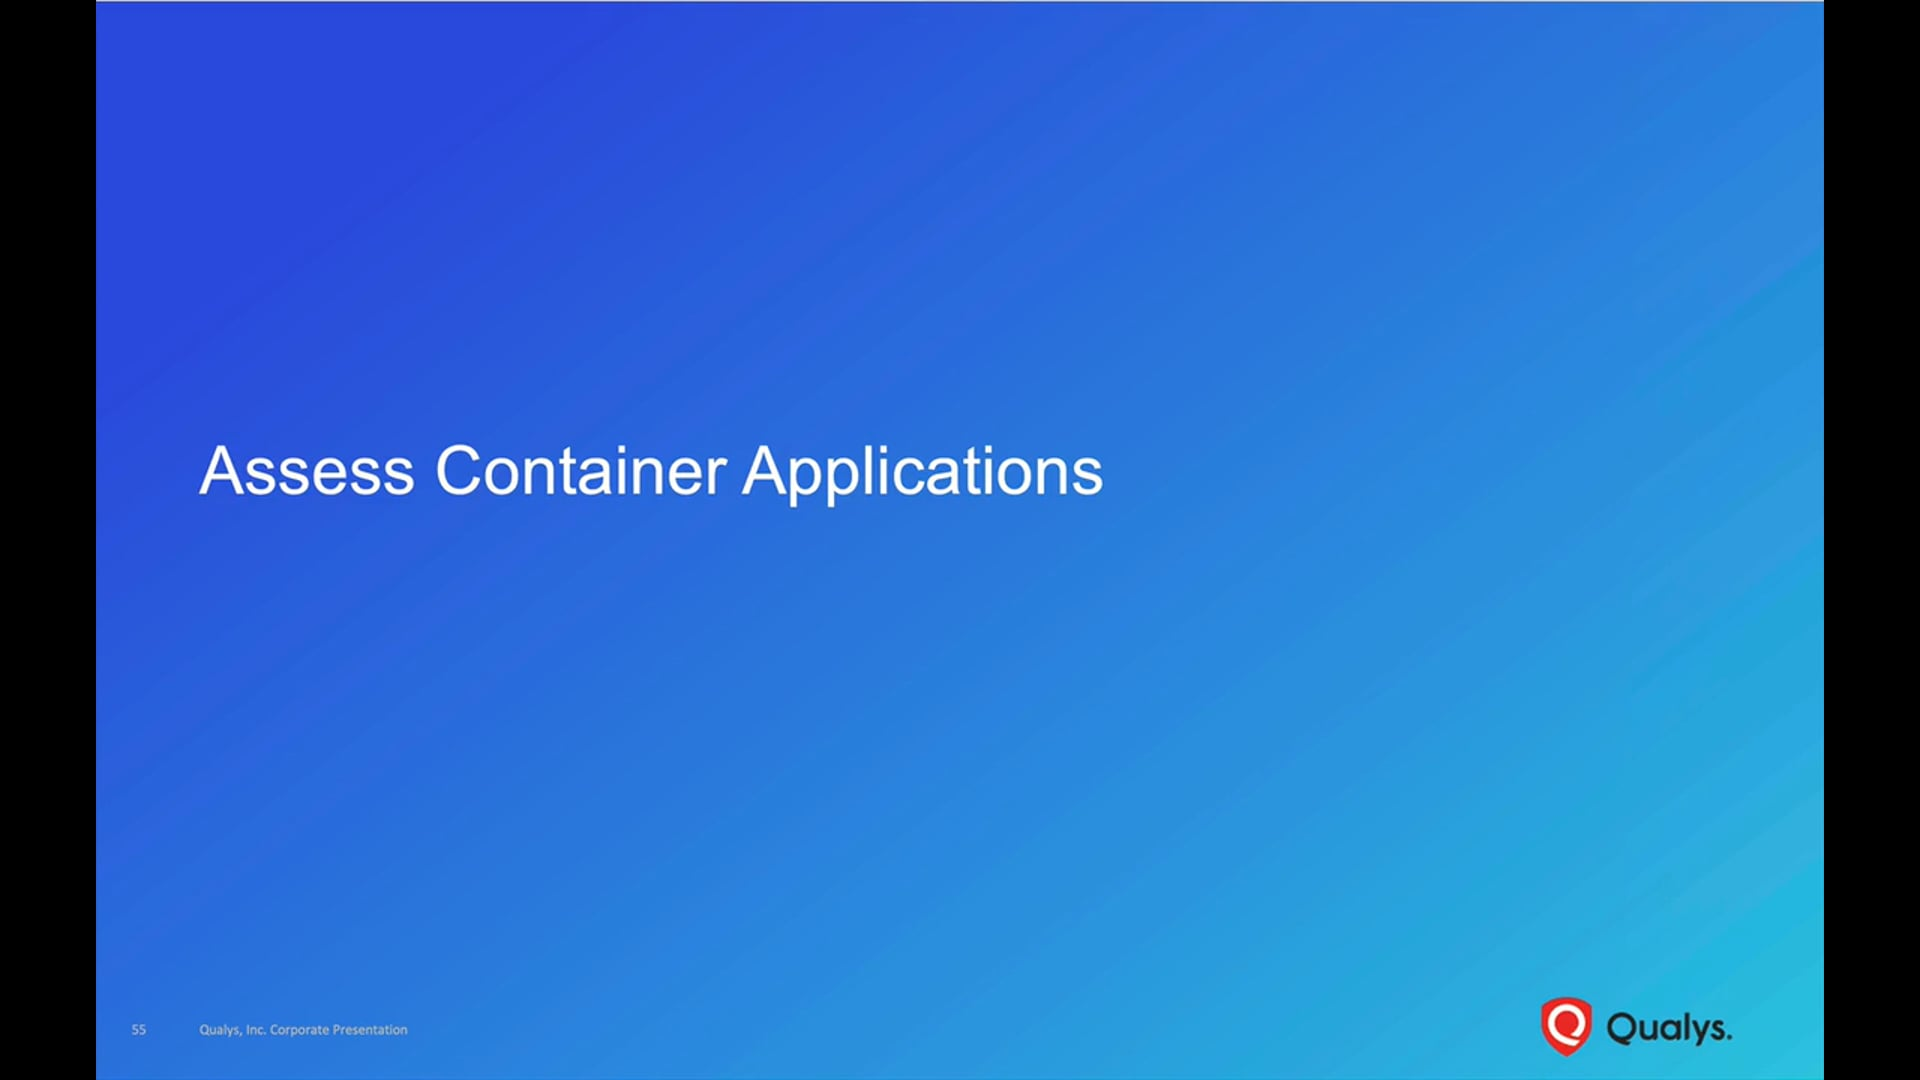 Assess Container Applications